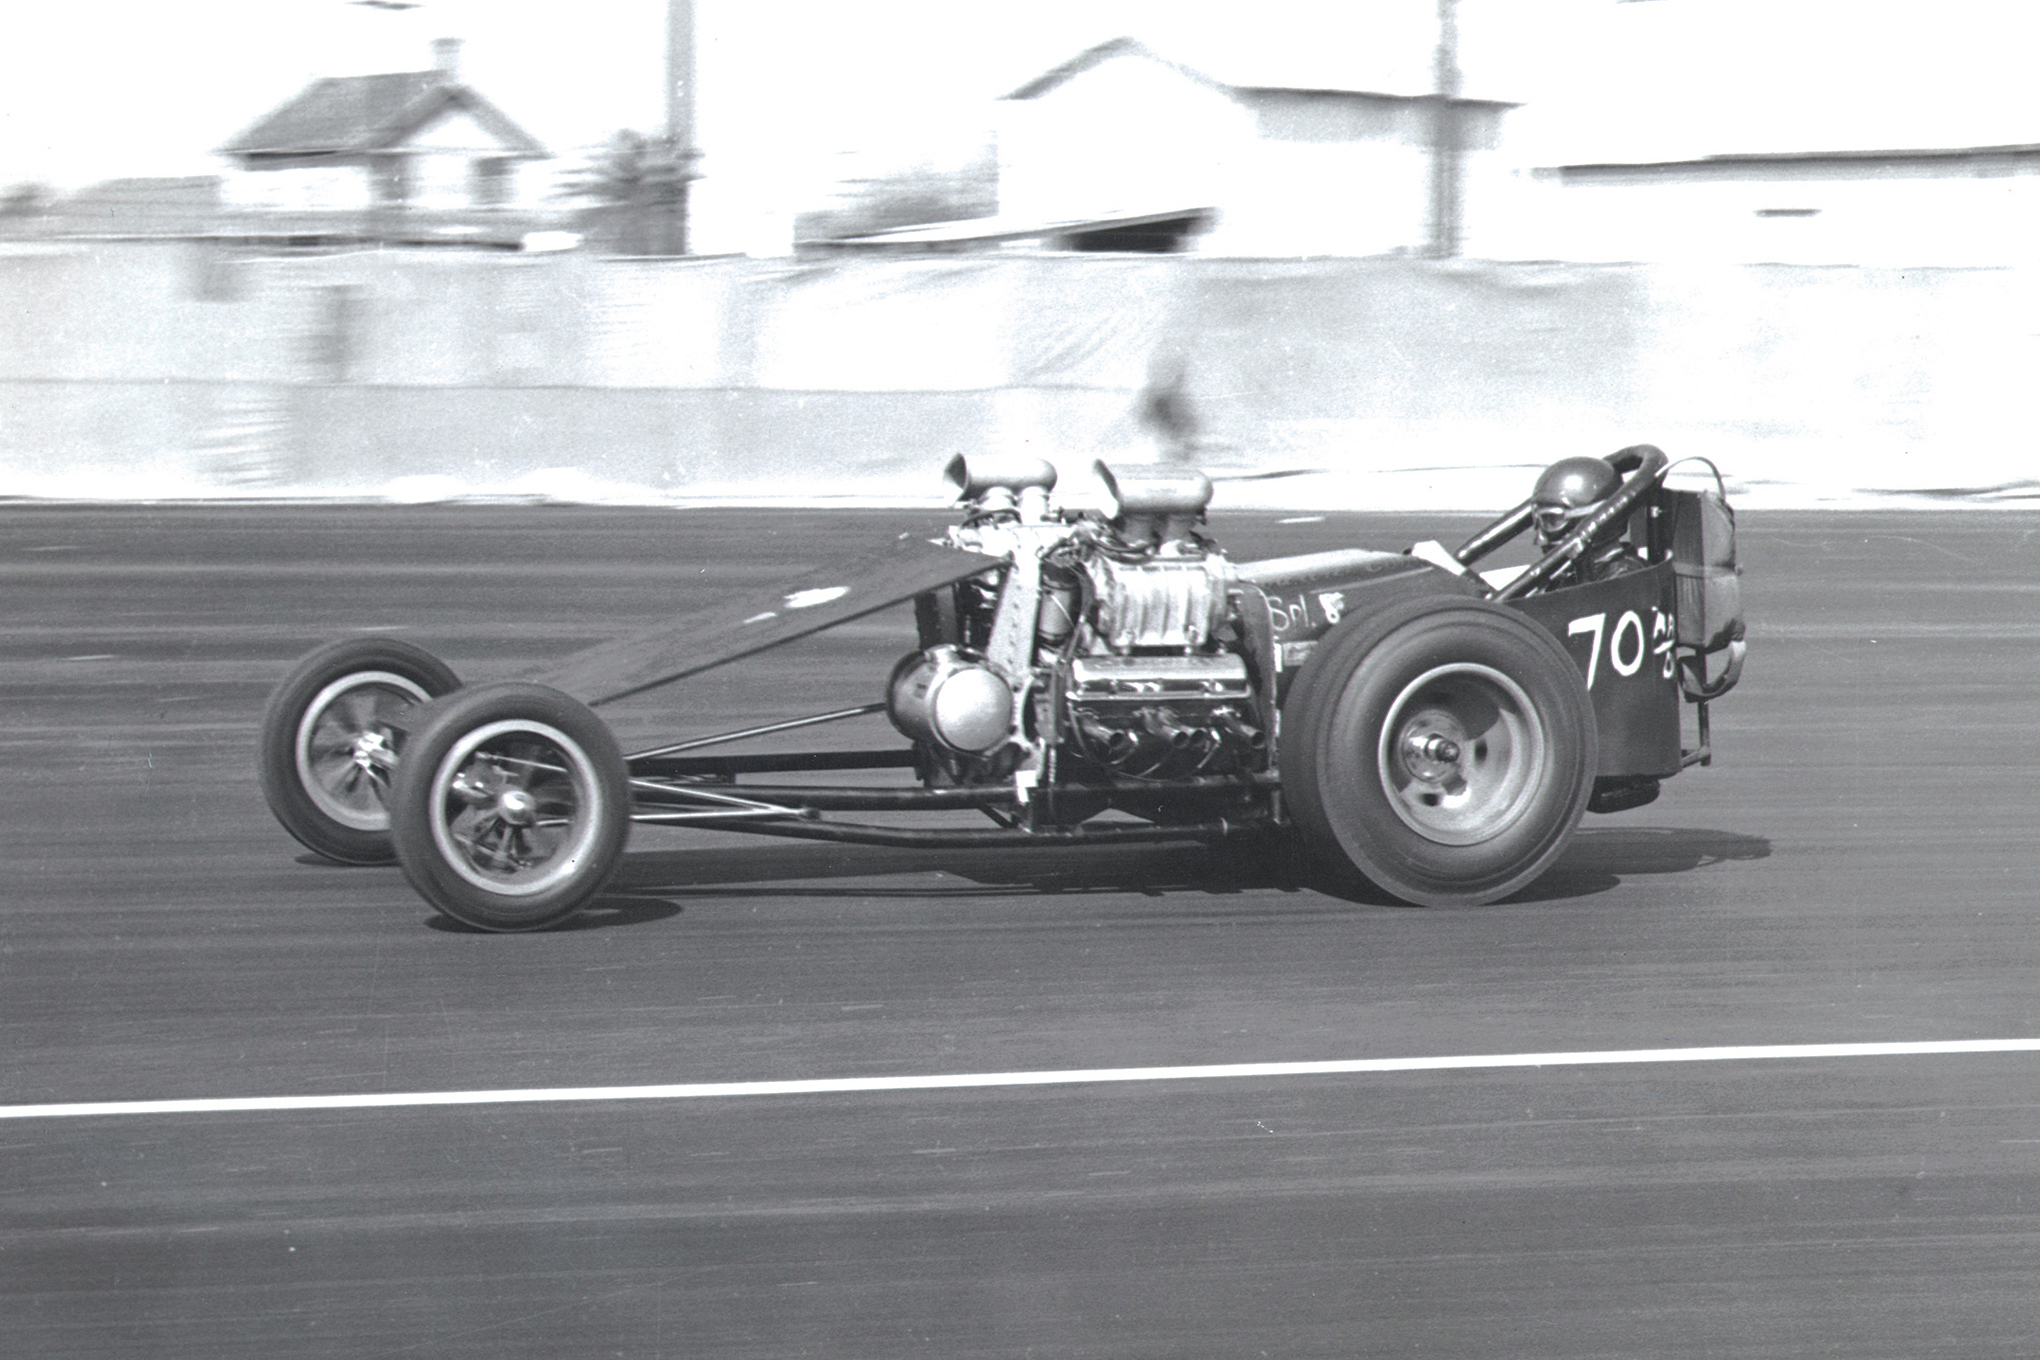 After Glen Ward crashed Howard Johansen's Twin Bears car at Amarillo Dragway in 1962, it was Jack Chrisman who got behind the torque. This opposed-twin version featured bored-and-stroked 283 small-blocks with 4-71 blowers and Hilborn injectors. Chrisman won the 1960 Winternationals in this car, running a best of 8.00/170.